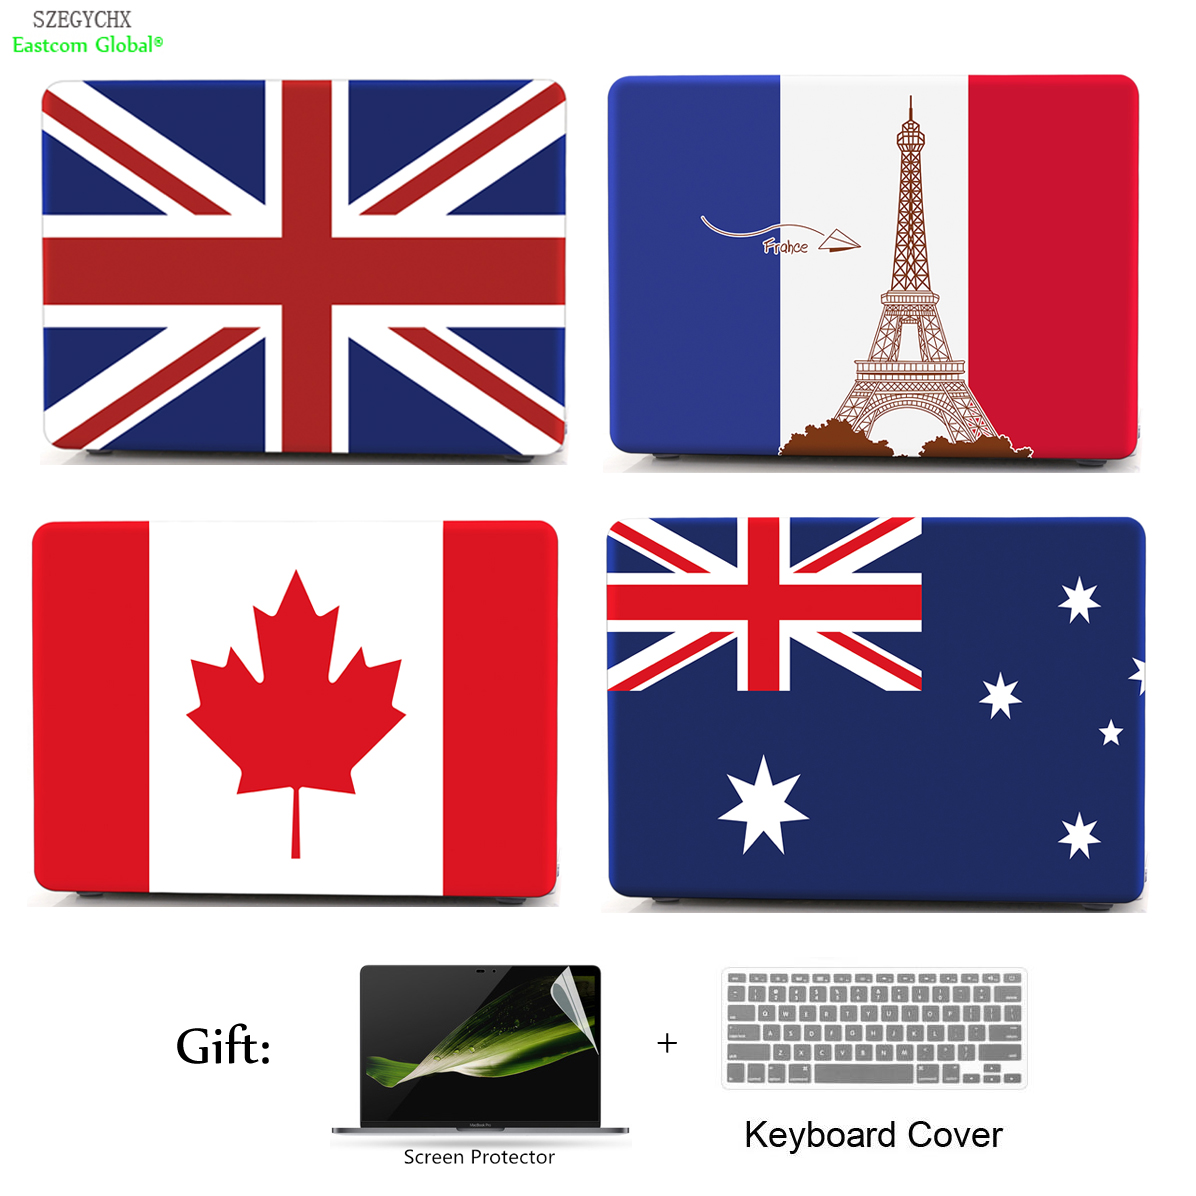 SZEGYCHX US UK CA FR AU CN Flag Hard Sleeve Shell Case For Macbook Air Pro Retina 11 12 13 15 13.3 inch with Touch Bar Laptop